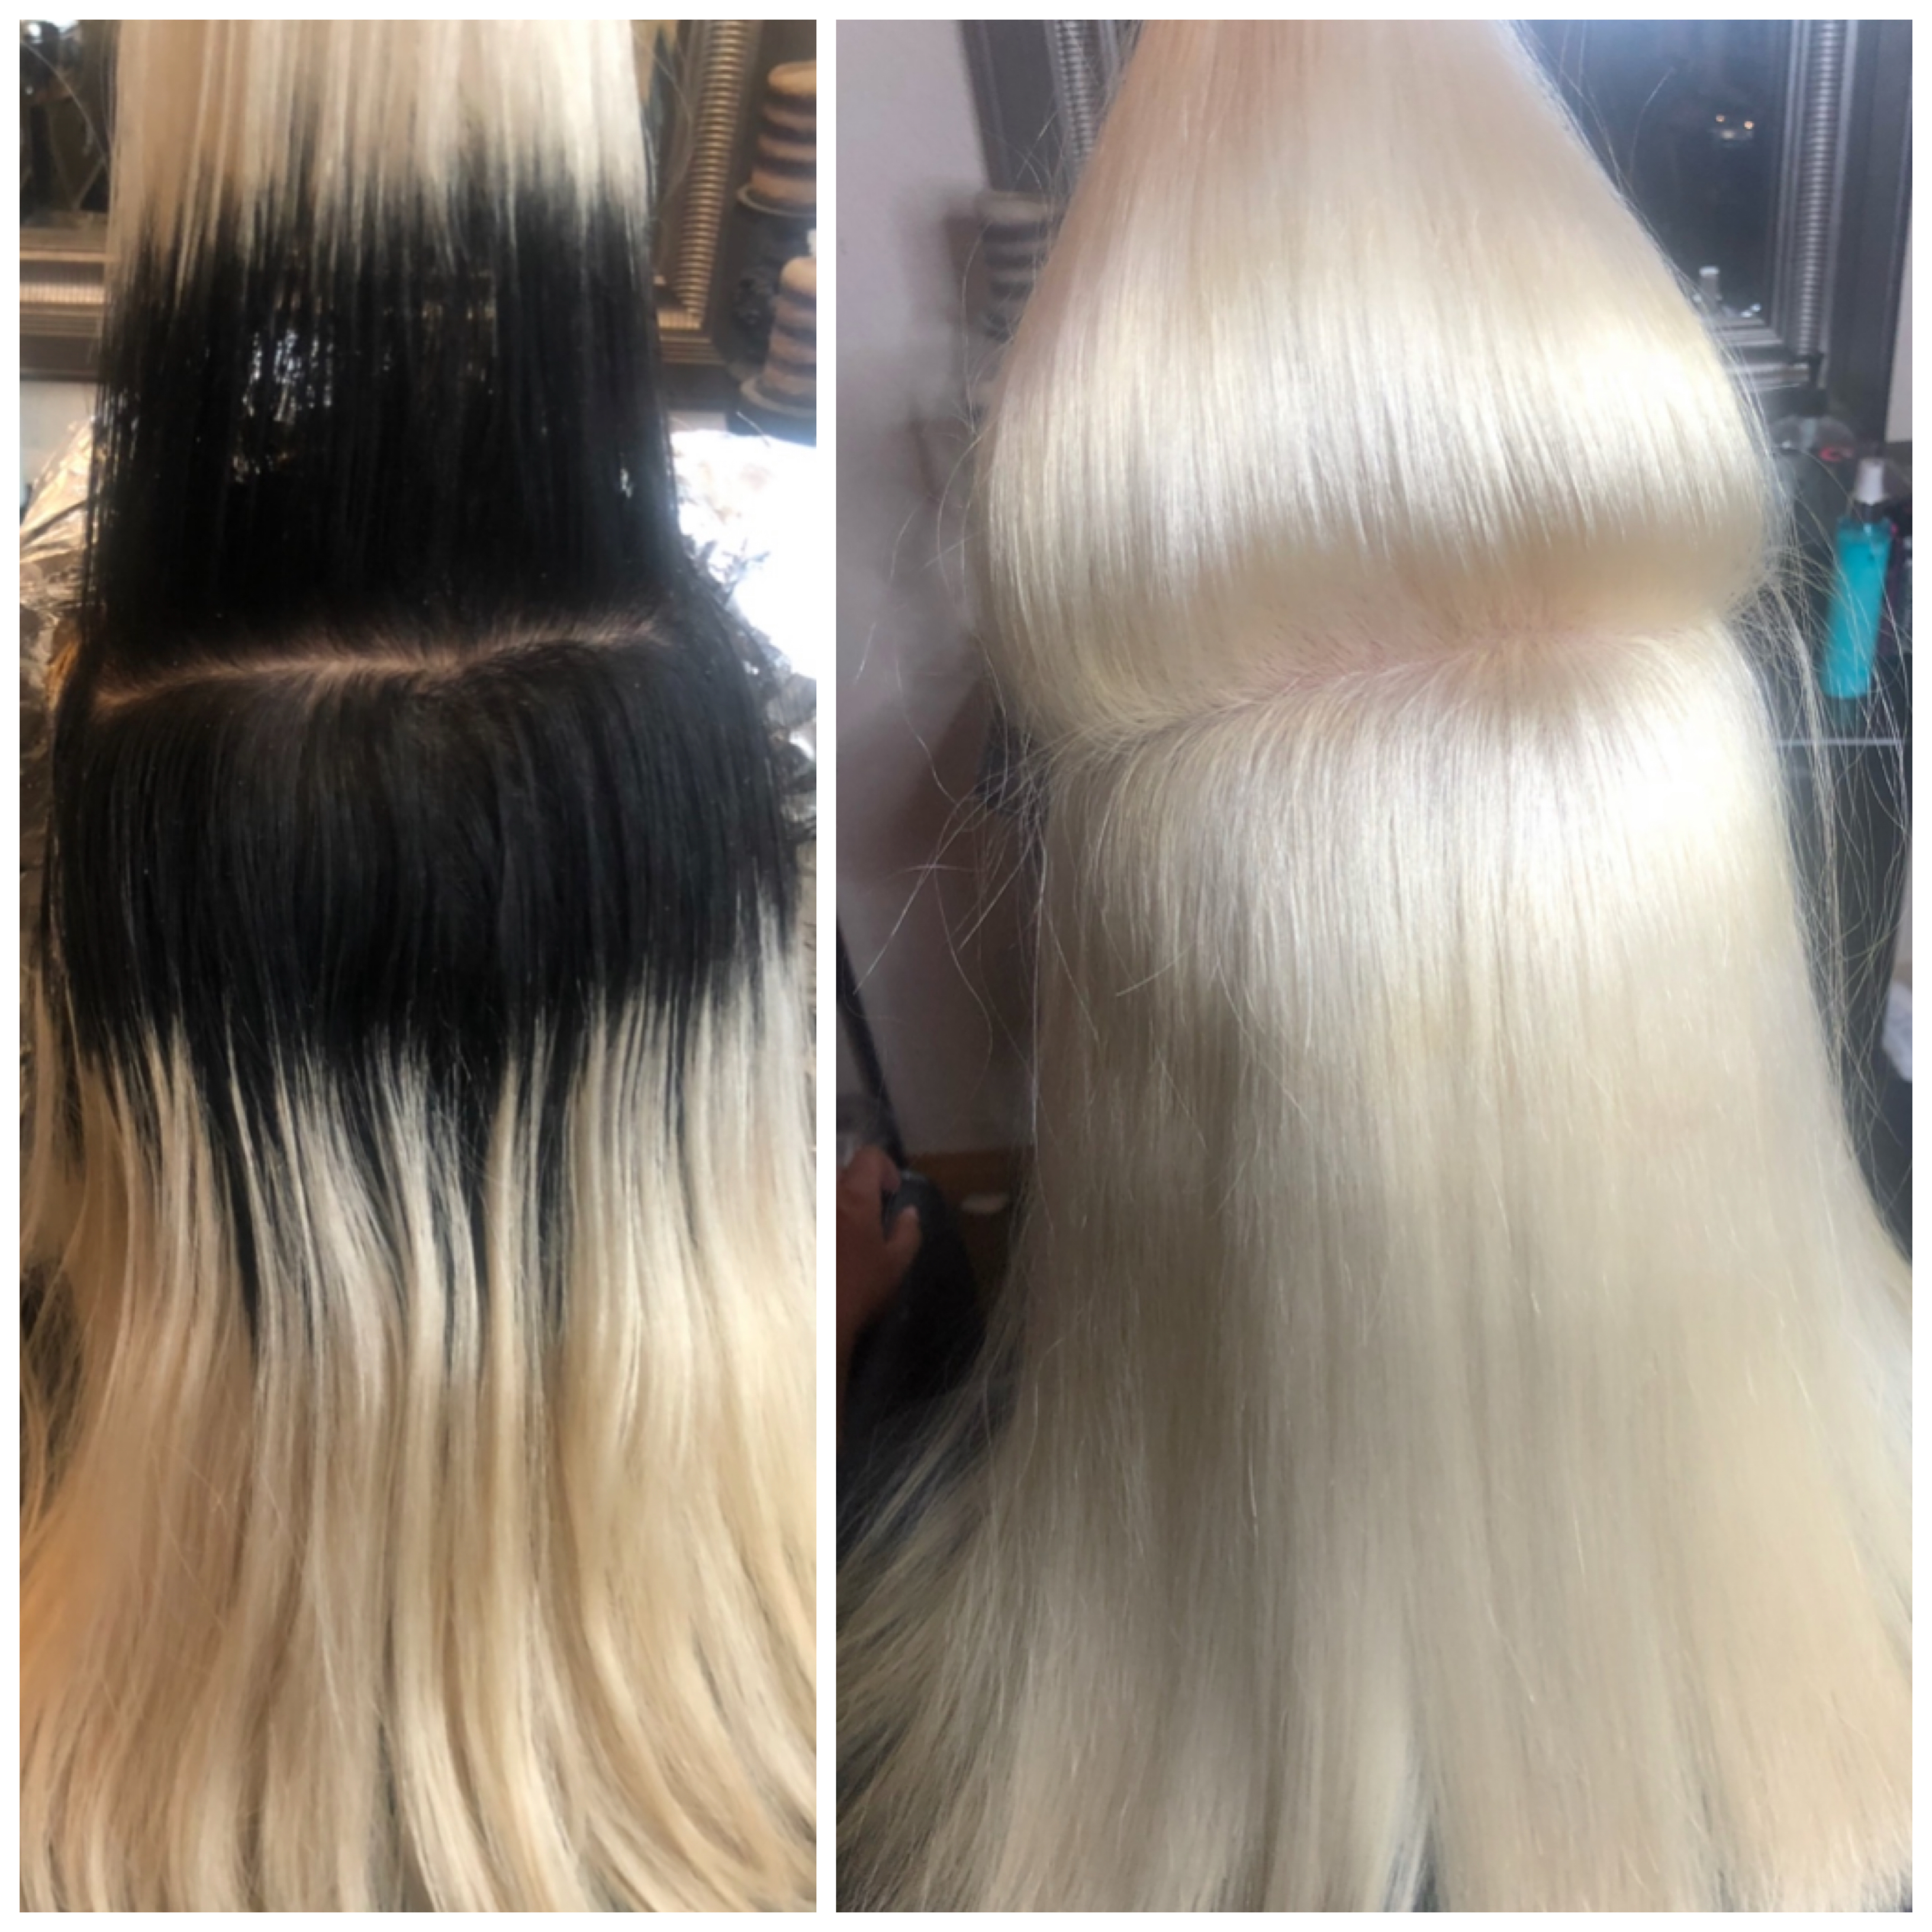 MAKEOVER: Uh-Oh to Icy Blonde